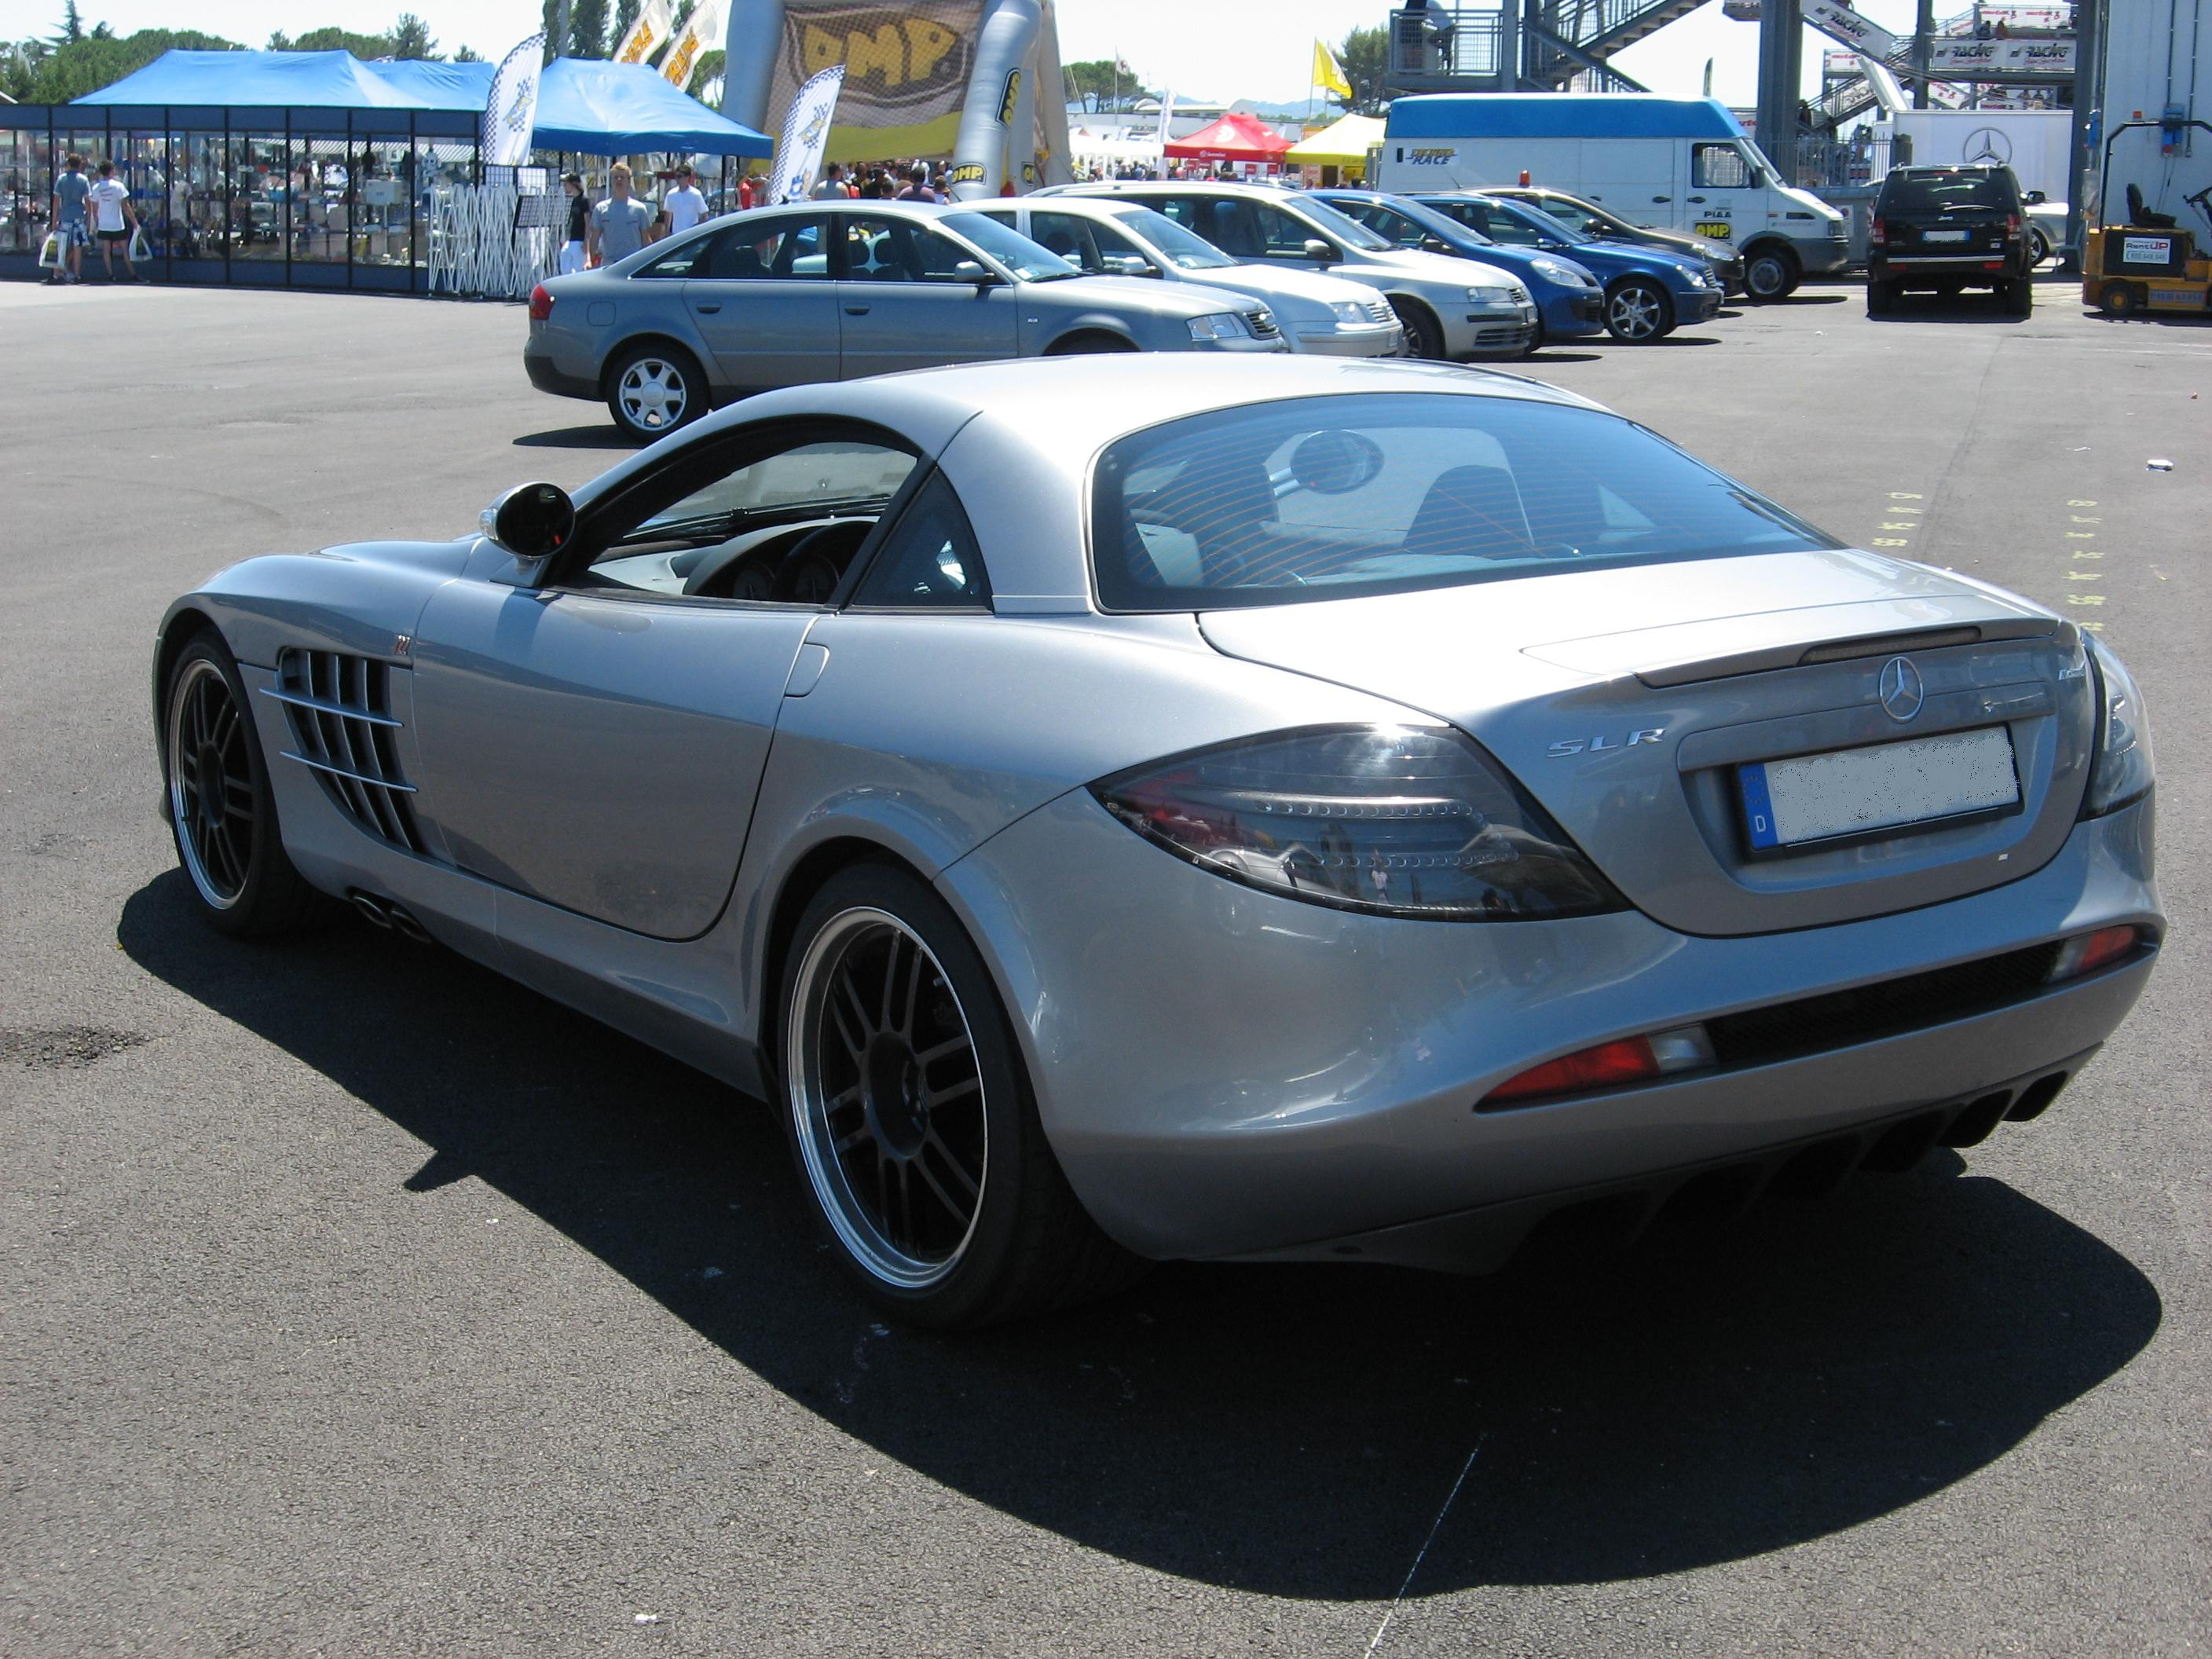 File:Mercedes-Benz SLR-McLaren 722 Coupé Rear-view.JPG